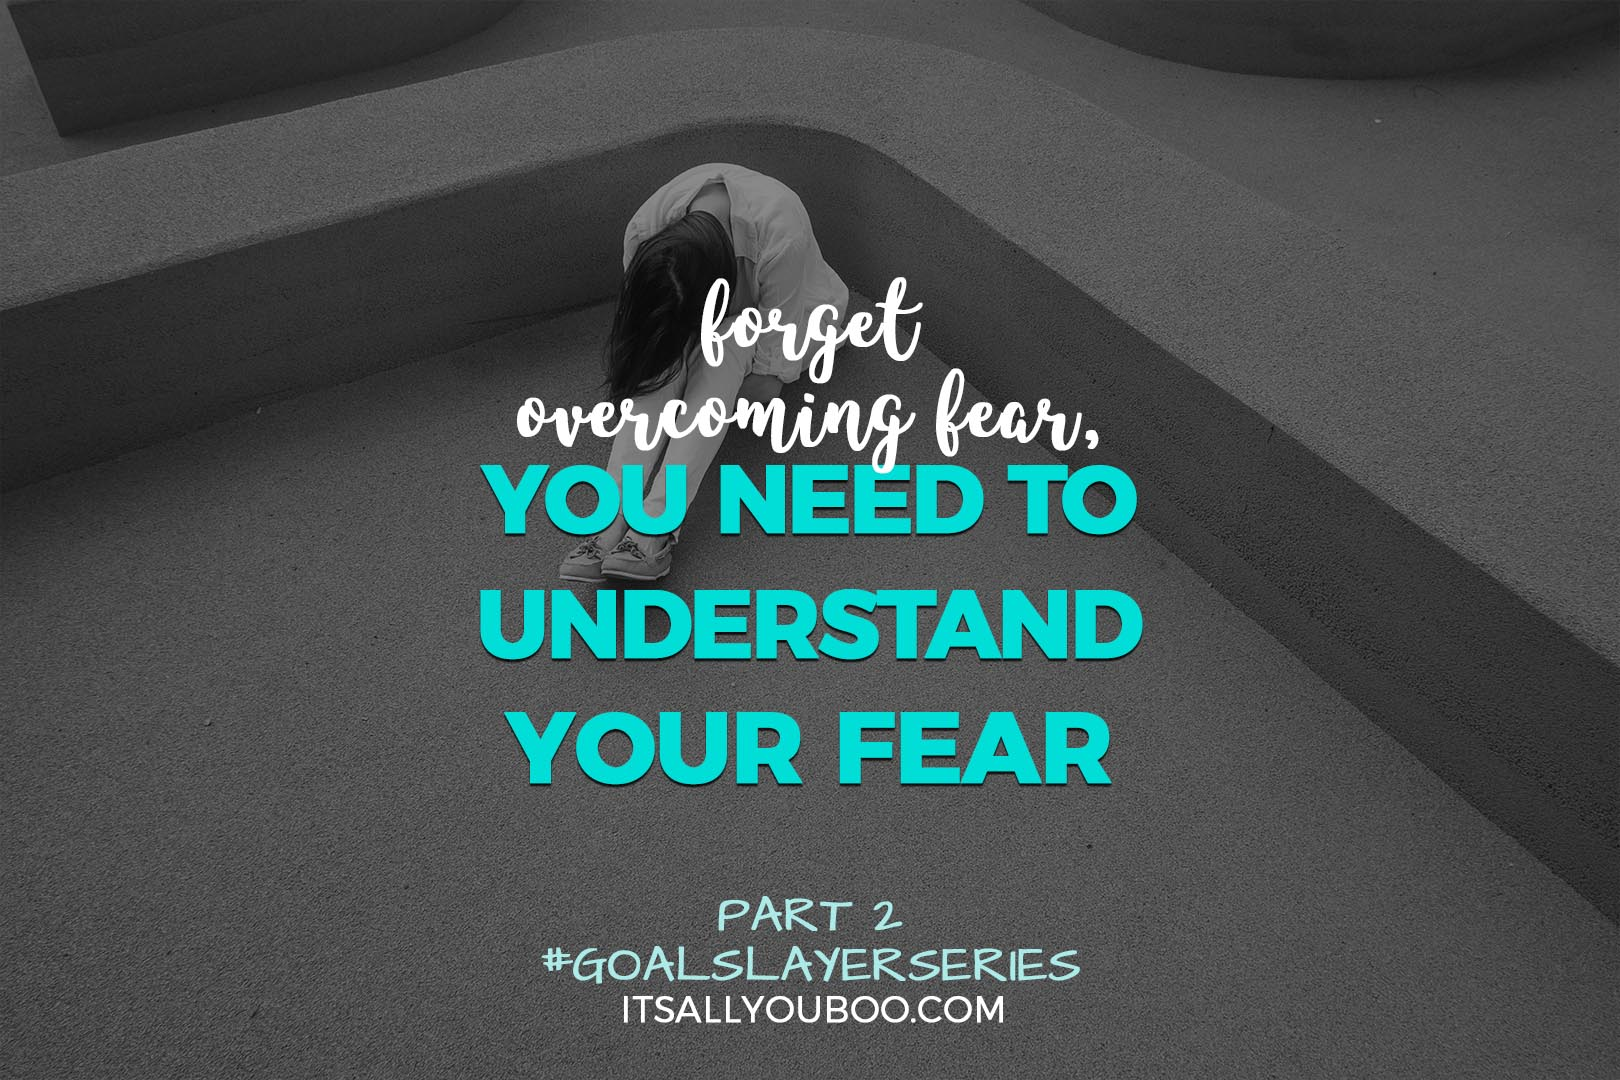 Forget Overcoming Fear, You Need to Understand Your Fear